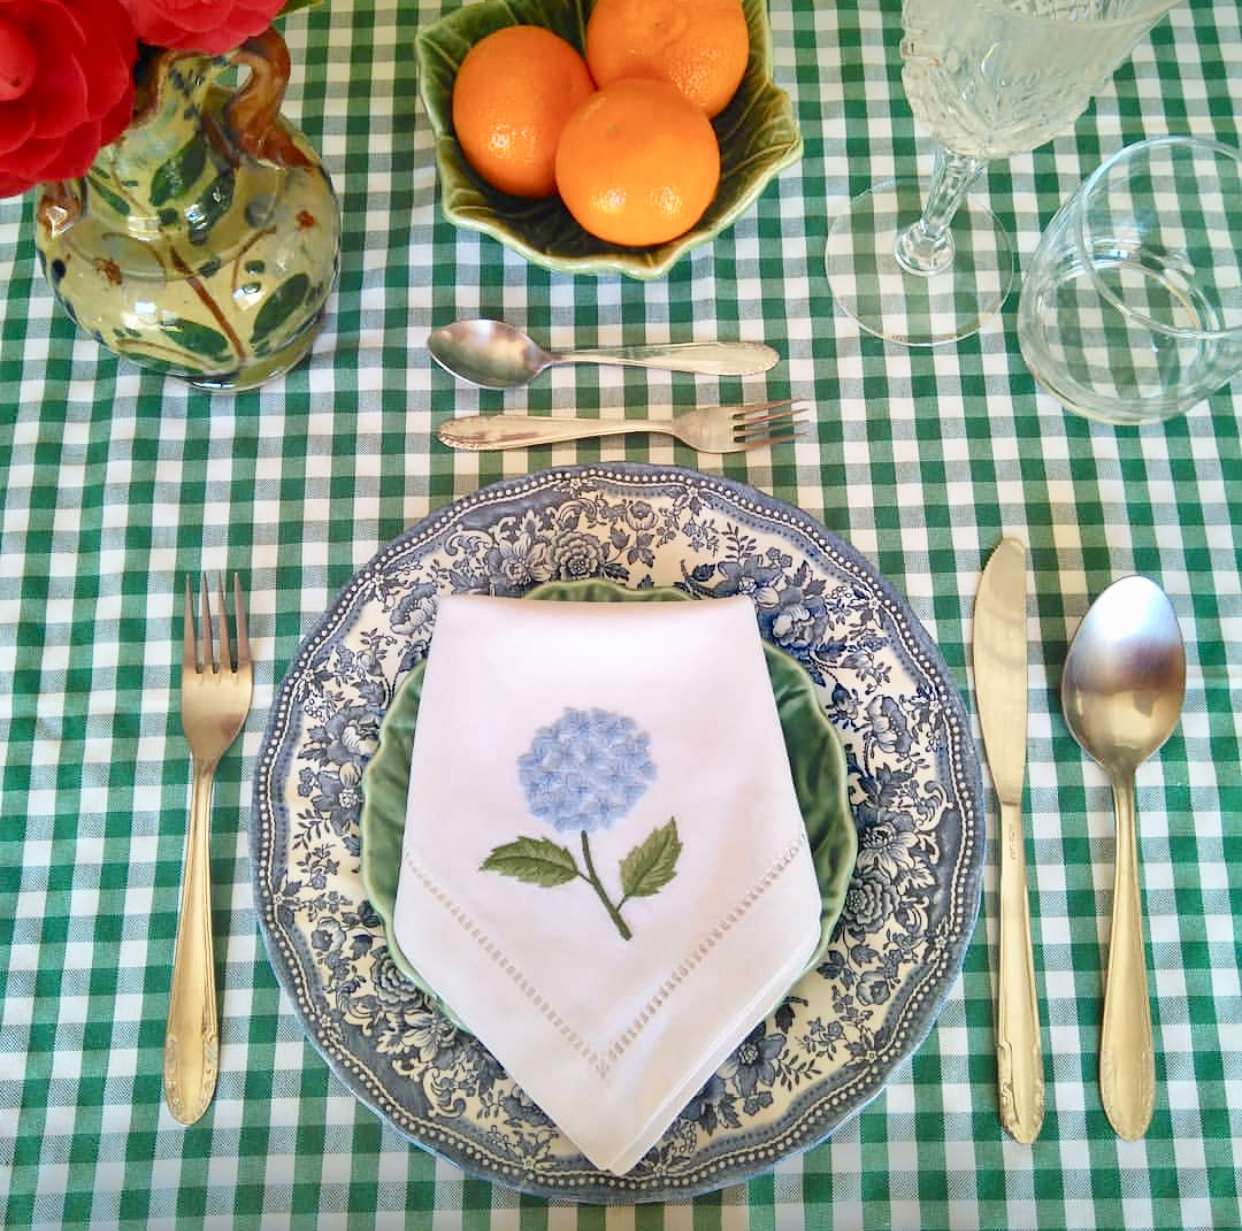 Gloria Gonzalez tablesetting bonadea napkin